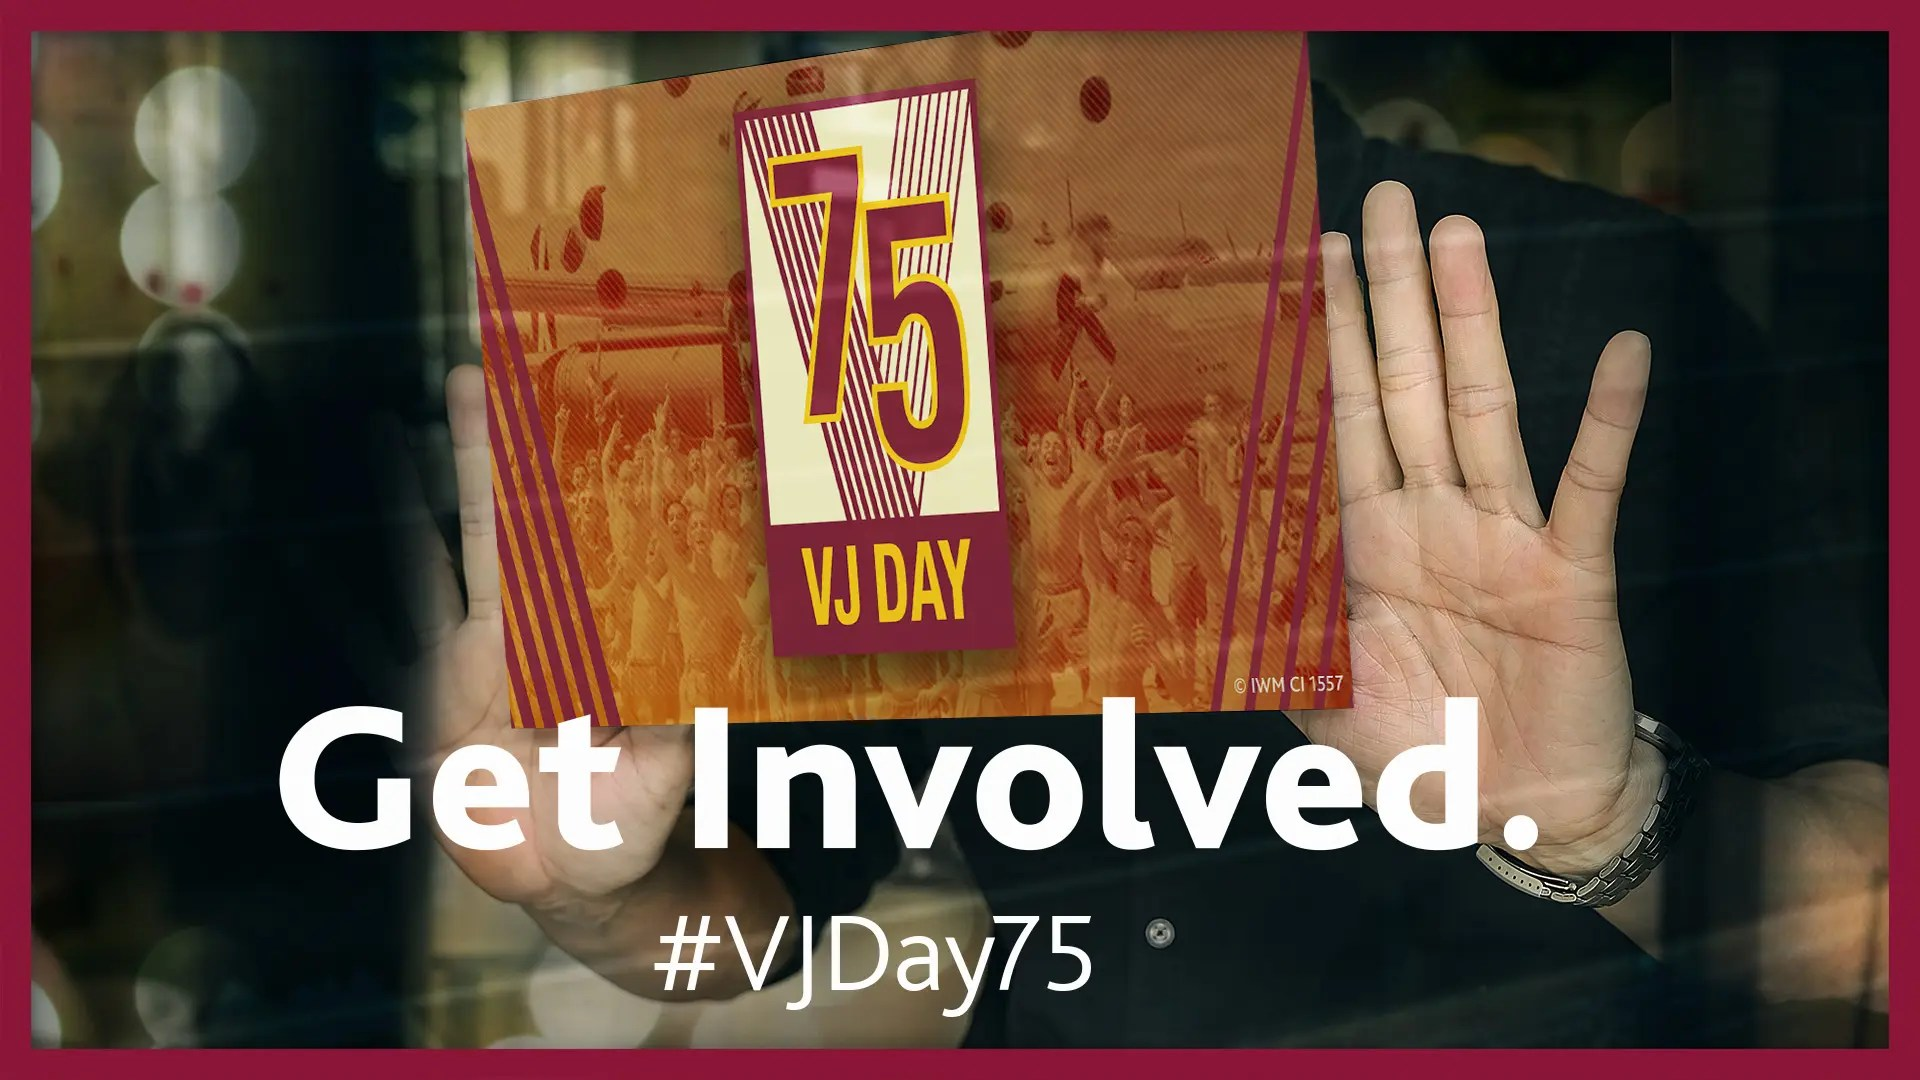 """<span class=""""hpt_headertitle"""">What are you doing for VJ Day 75?</span>"""